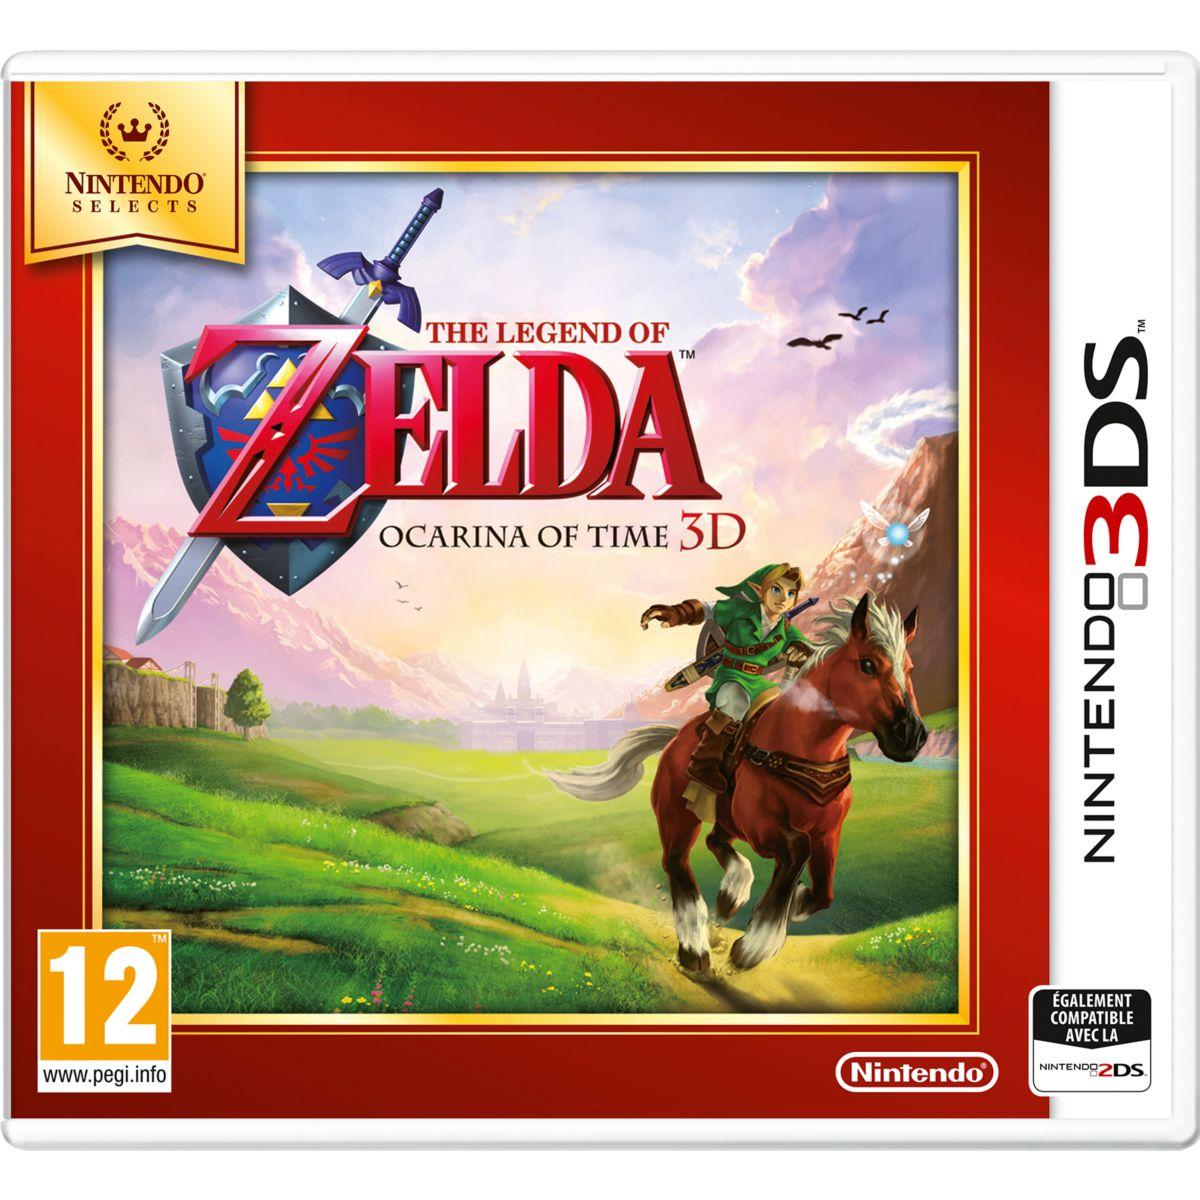 Jeu 3ds nintendo the legend of zelda ocarina time selects - 2% de remise immédiate avec le code : cool2 (photo)